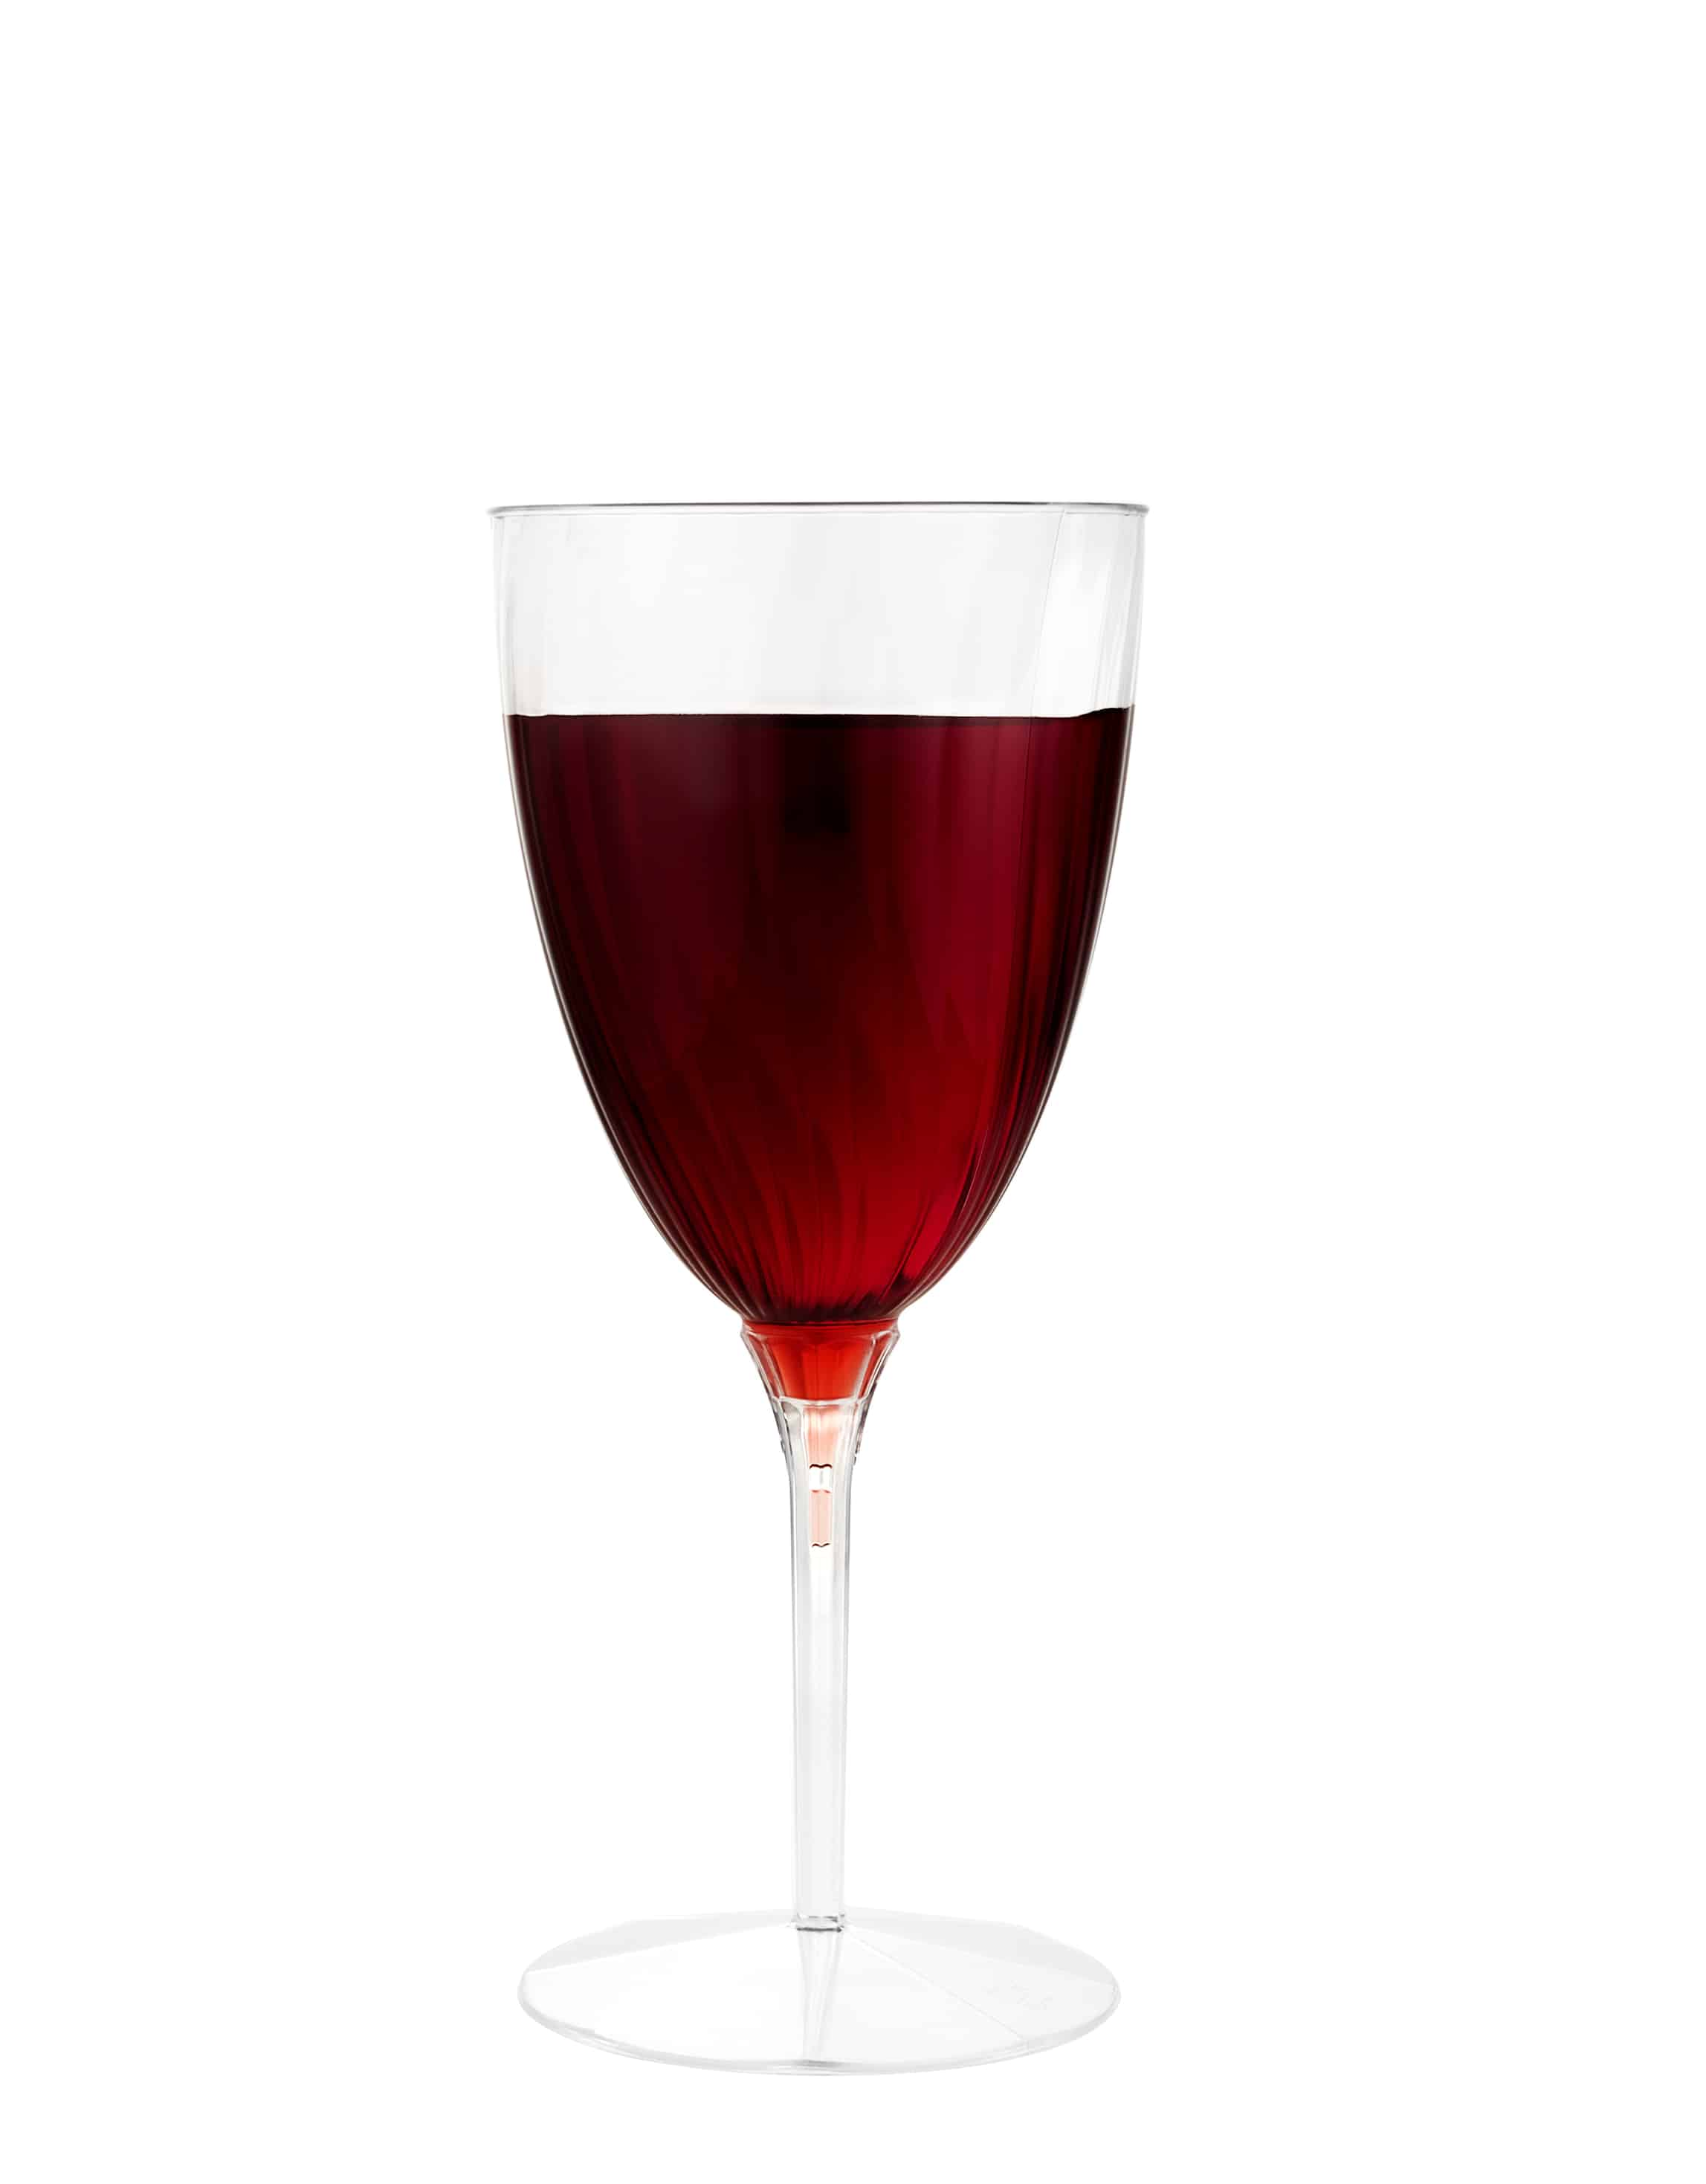 Premium Plastic Dinkware<br/>Size Options: 8oz Wine Stem Tumbler and 6oz Champagne Flute Tumbler